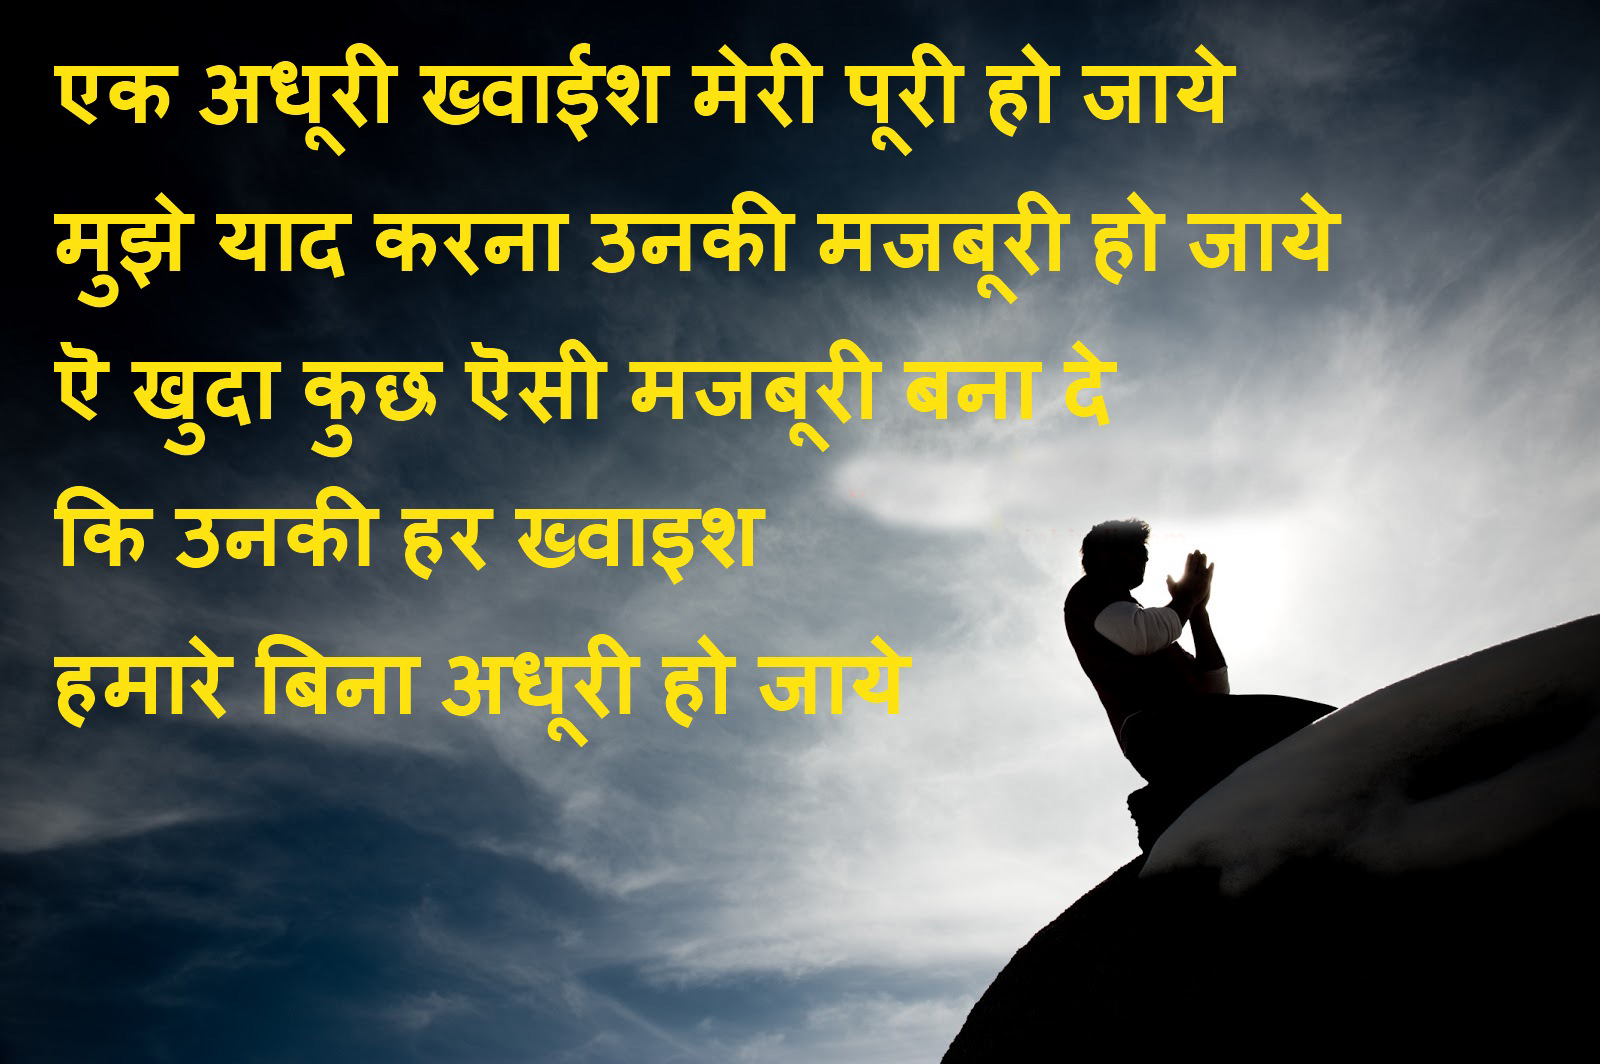 Wallpaper download love shayri - Hindi Shayari Wallpaper 2015